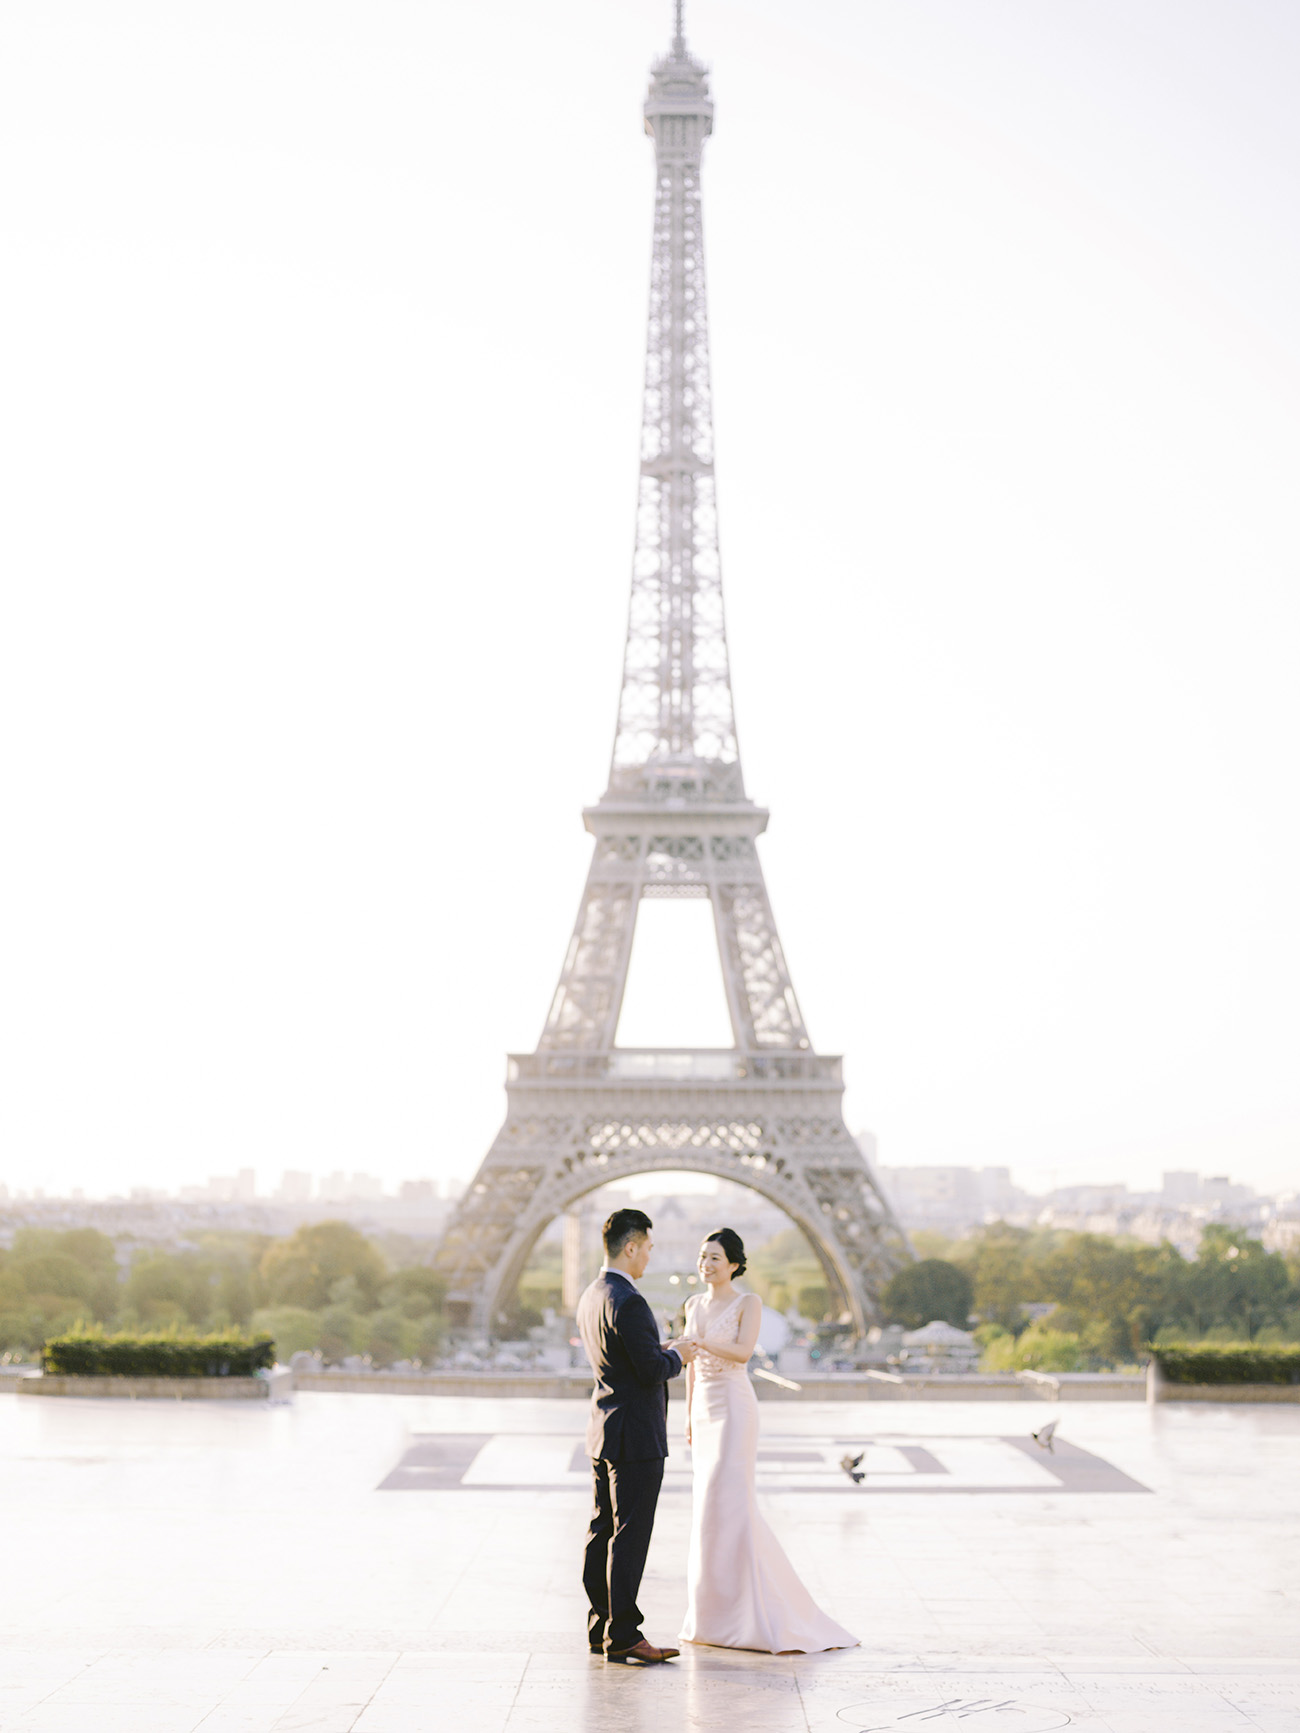 For their pre wedding paris the couple had a session on the place du tracadero facing the Eiffel Tower